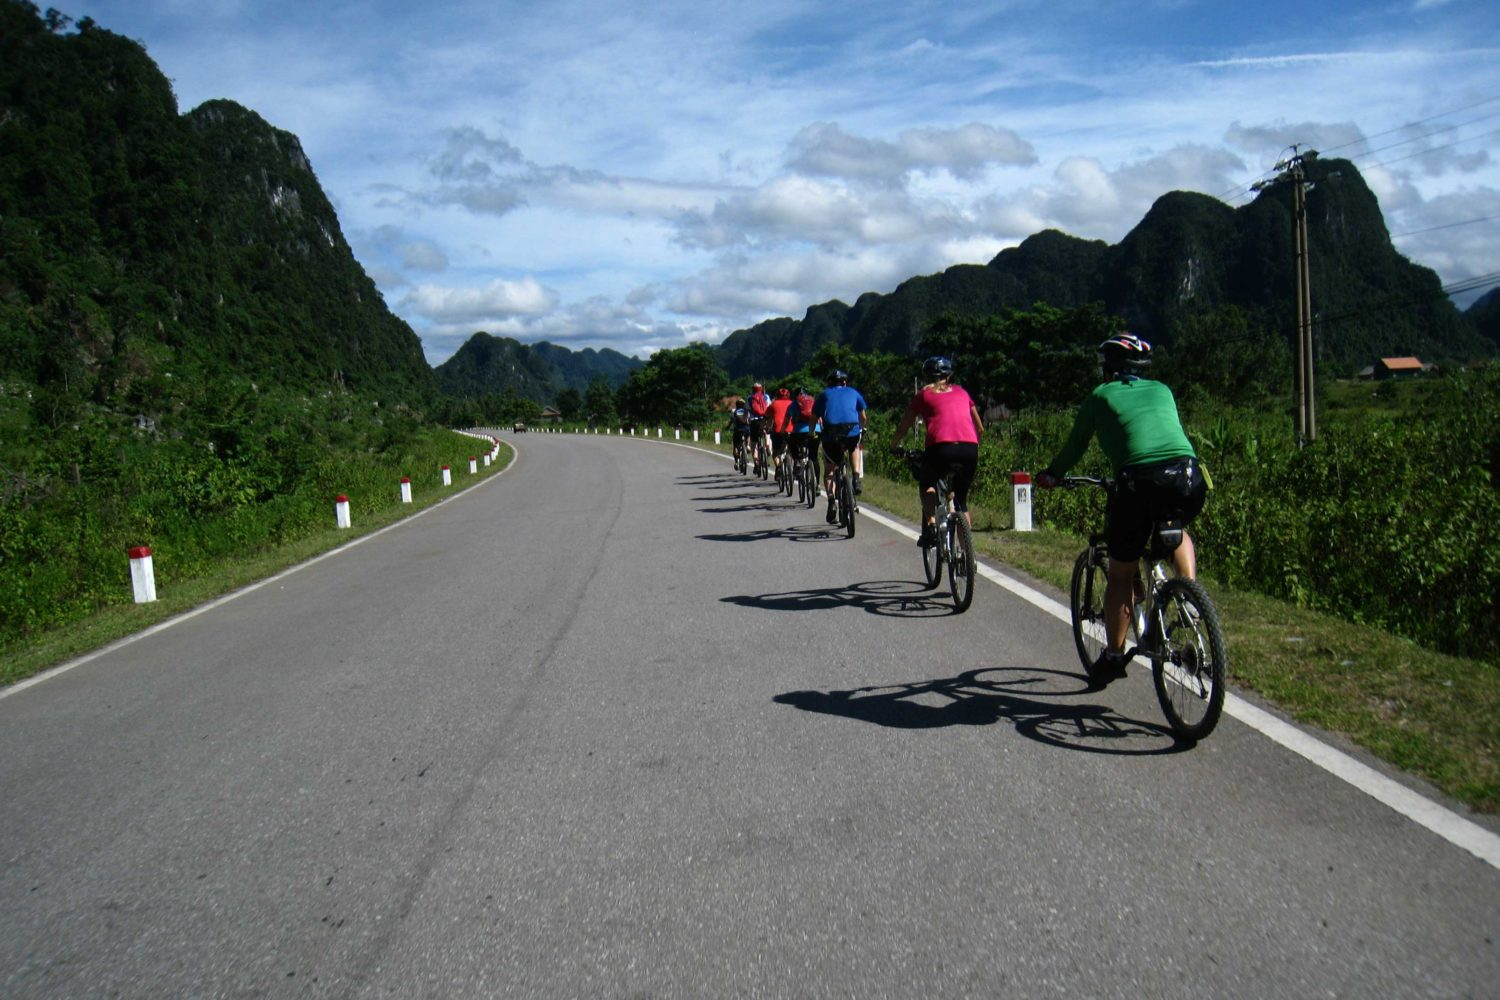 myanmar cycling tours - burma cycling hoildays - burma bike tours